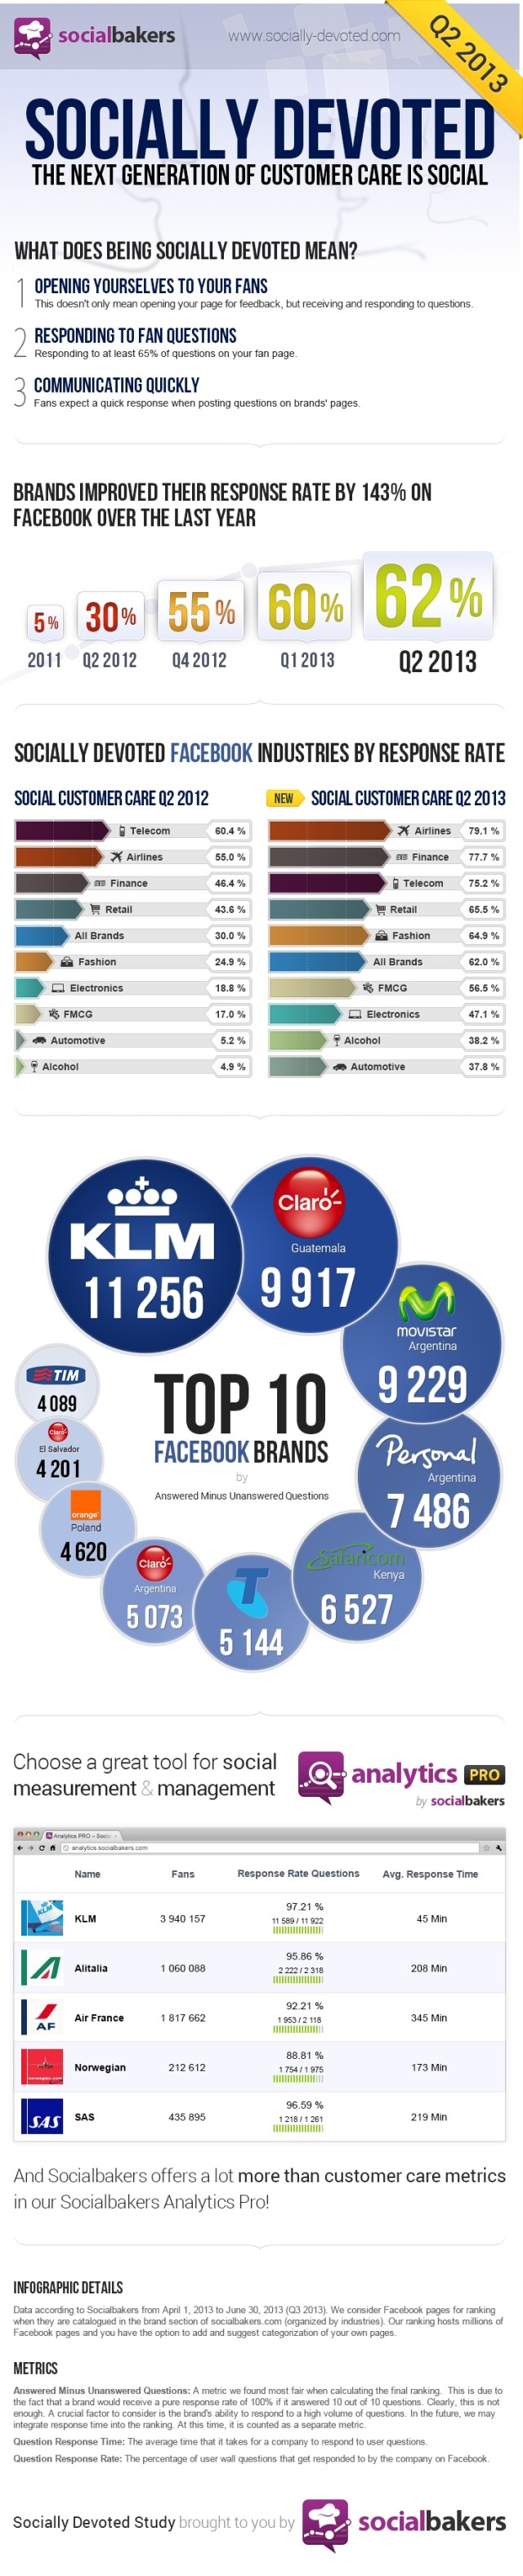 SocialbakersSociallyDevoted2Q13Infographic